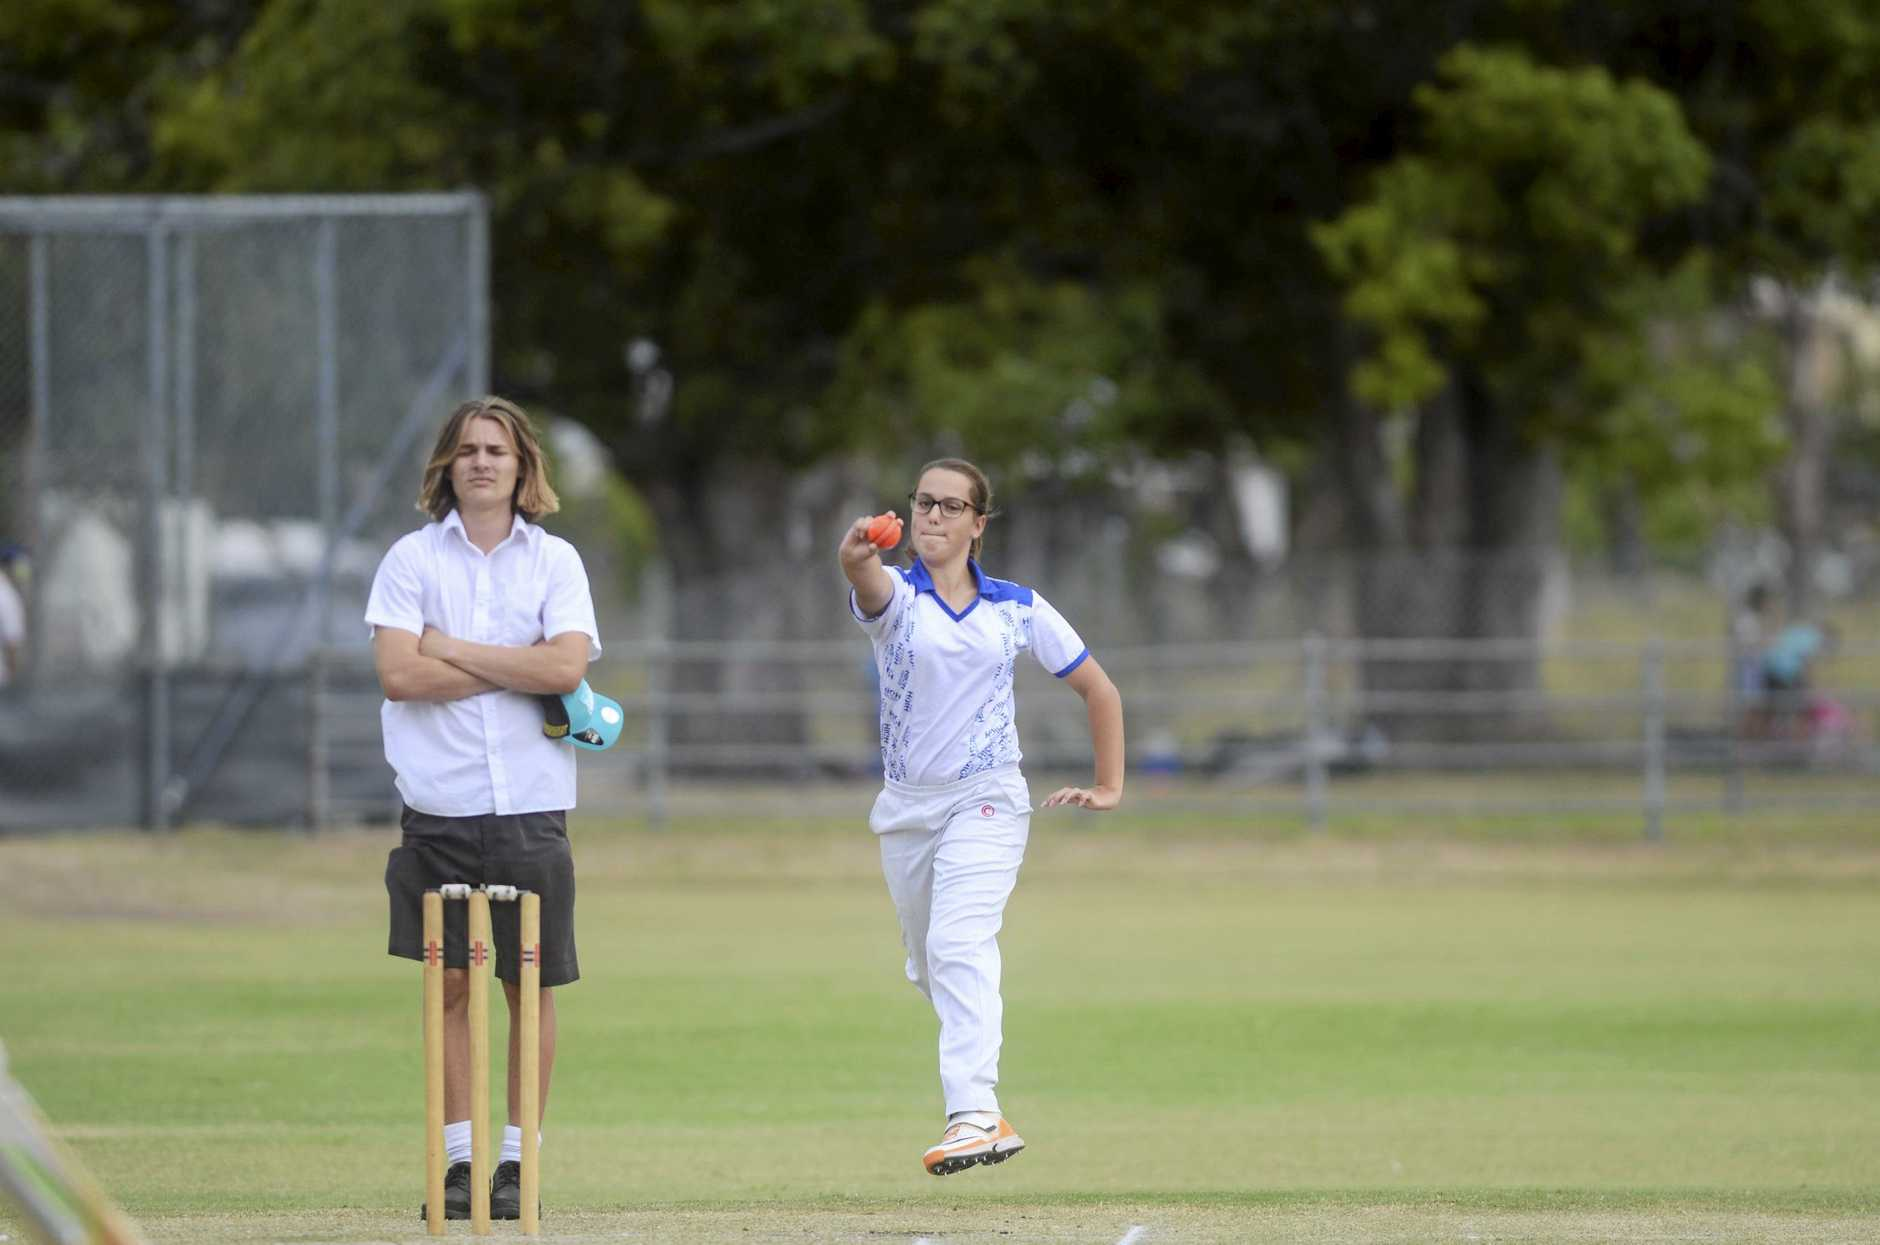 AIMING UP: Caitlin Chevalley took a wicket and scored 12 not out for Grafton High in round two of the 2018/19 Open Girls Daily Examiner Shield Super 8s Cricket competition against McAuley Catholic College at McKittrick Park on Tuesday.